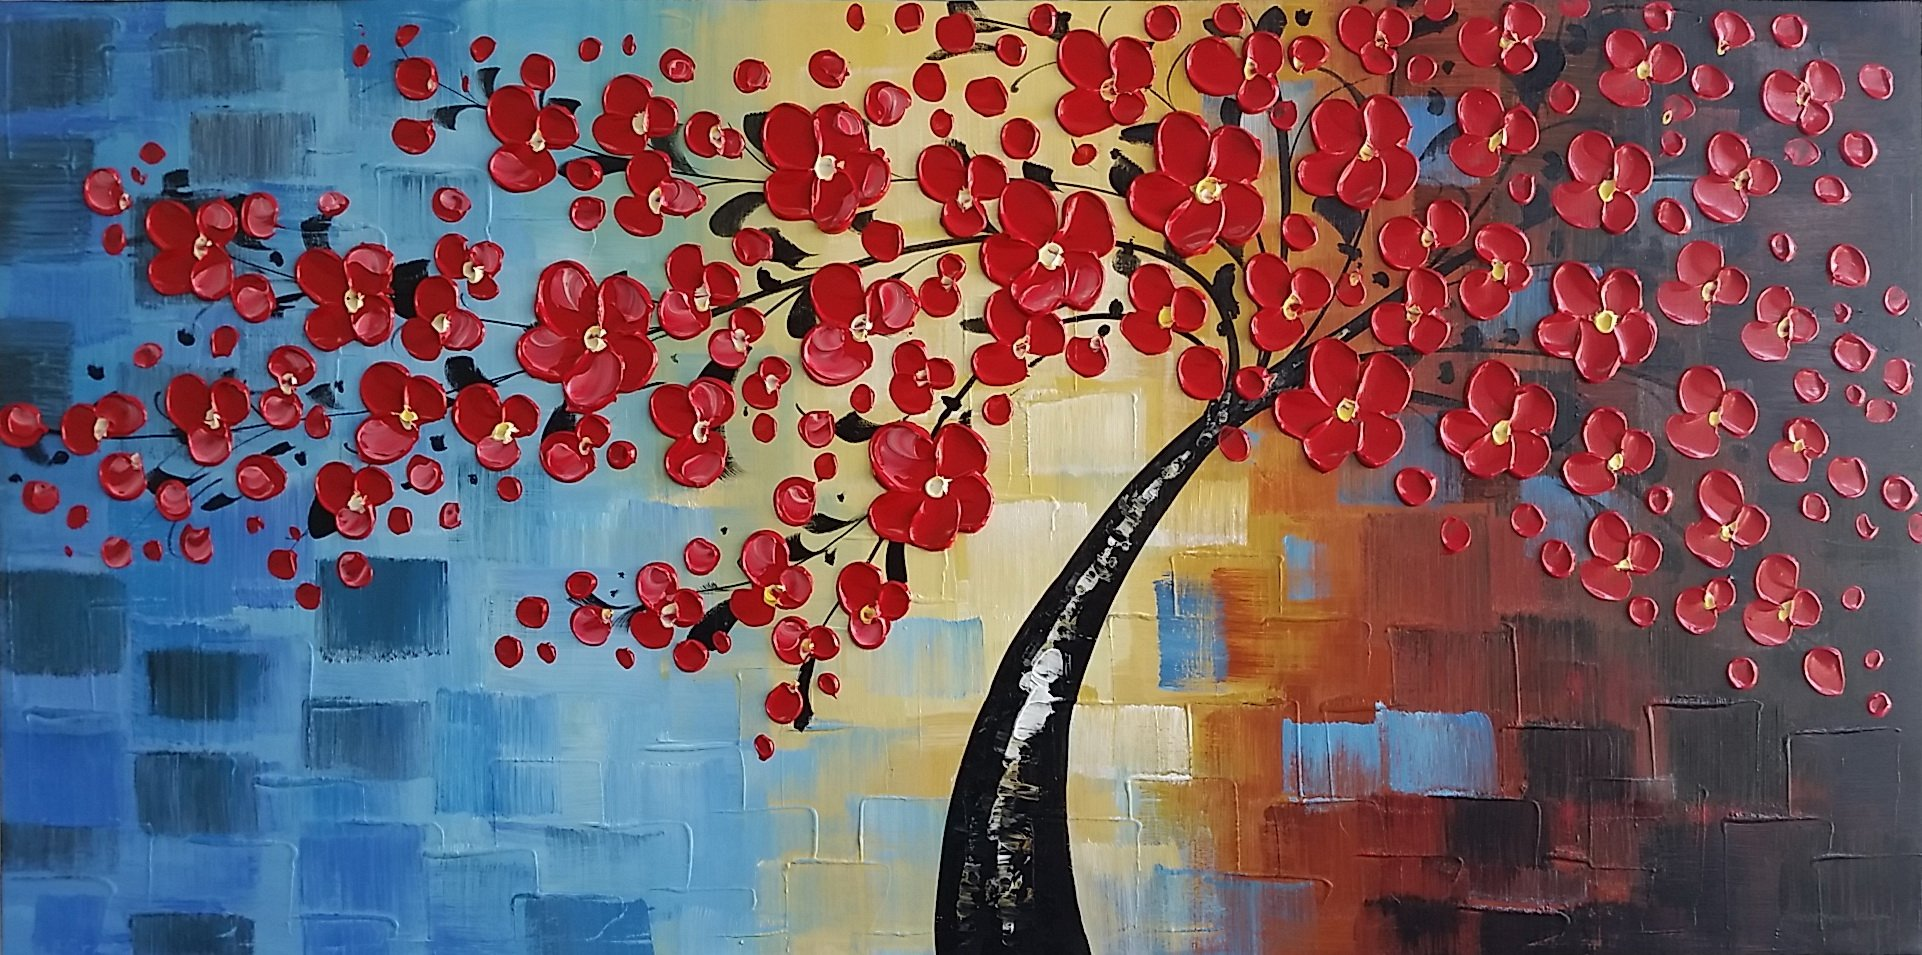 Wieco Art Abstract Floral Oil Paintings on Canvas Wall Art for Bedroom Bathroom Home Decorations Dazzling Beauty 3D Thick Layer Modern Large 100% Hand Painted Wrapped Pretty Red Flowers Artwork L